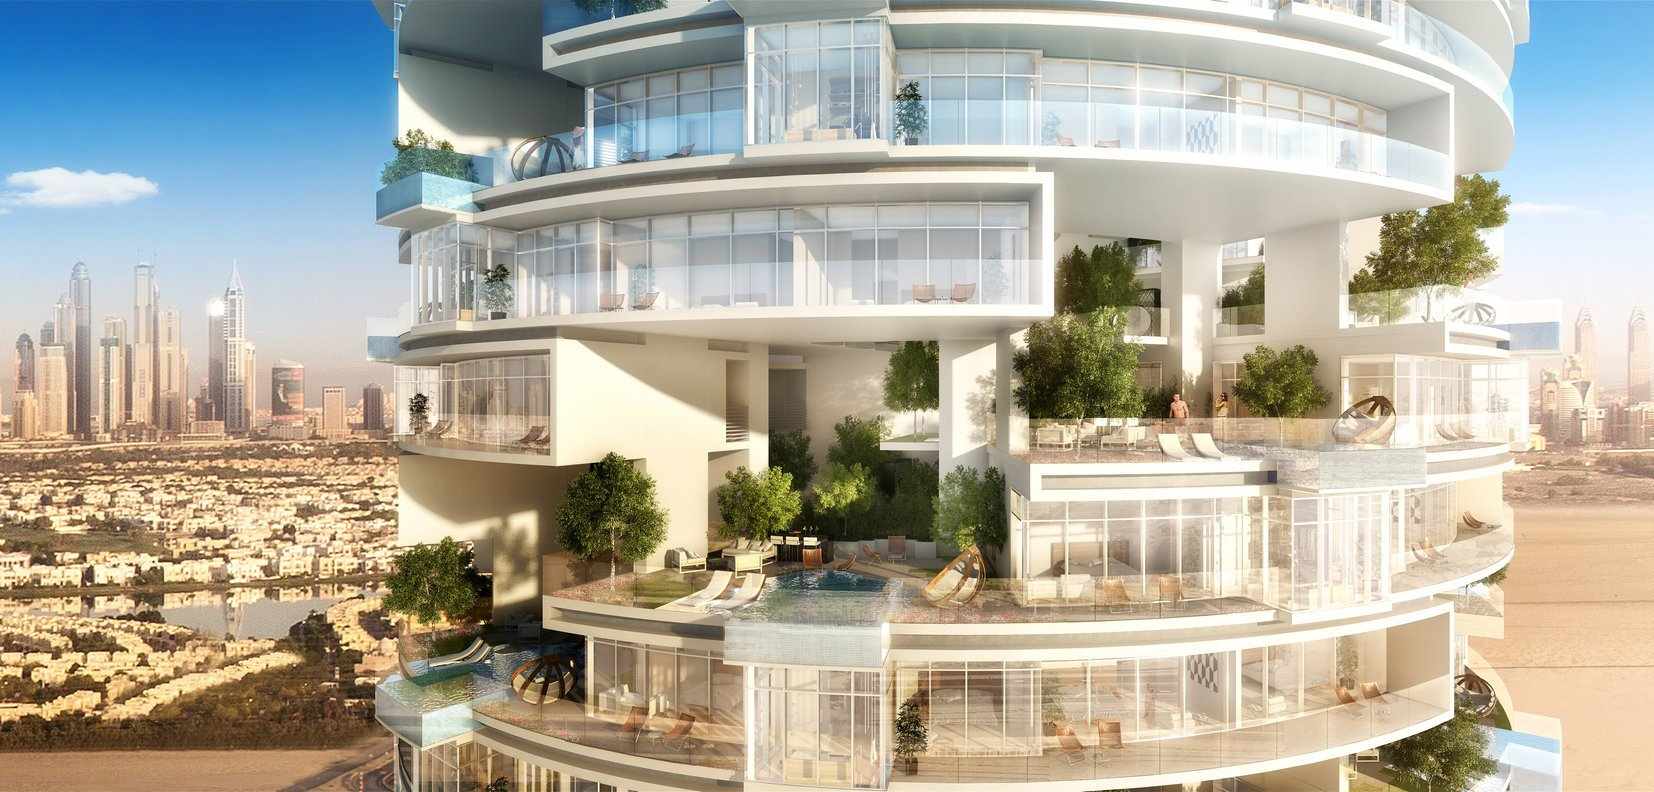 Dubai to welcome a new tower that will have an astounding 254 floating swimming pools